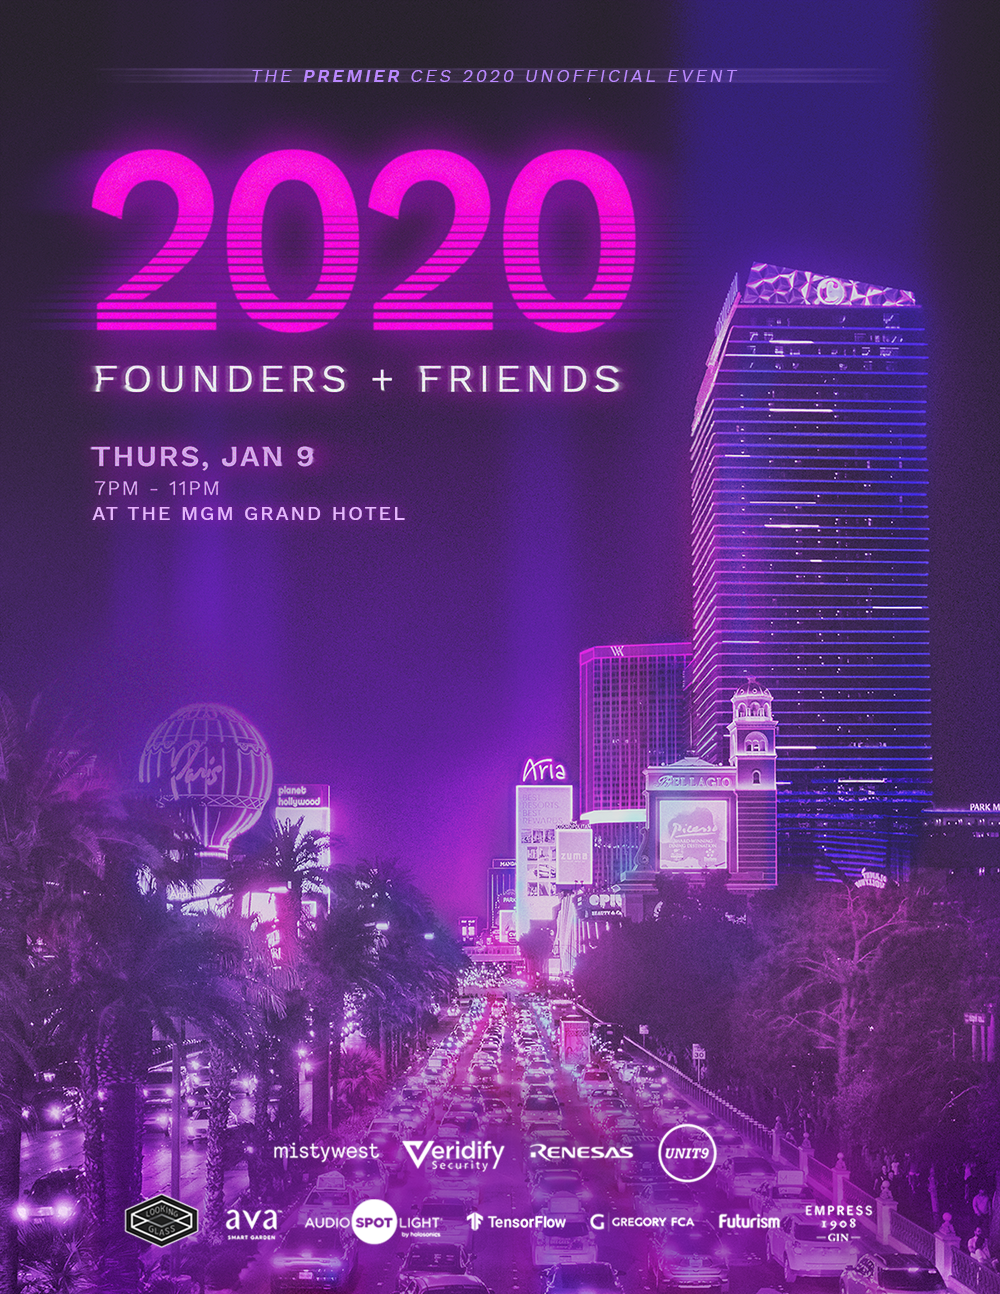 Founders and Friends 2020 at the MGM Grand Hotel in Las Vegas